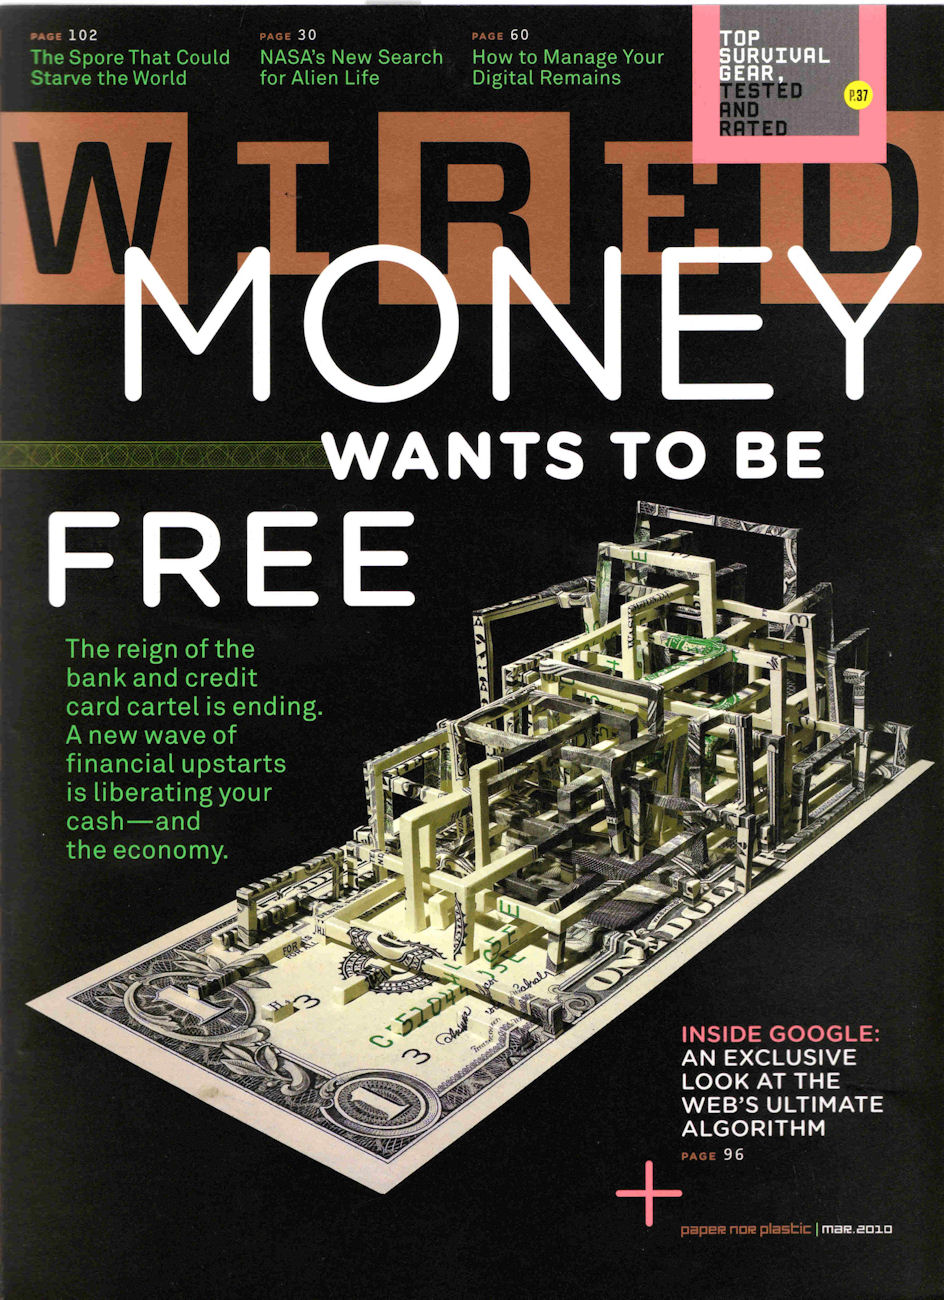 wired-march-2010-cover.jpg